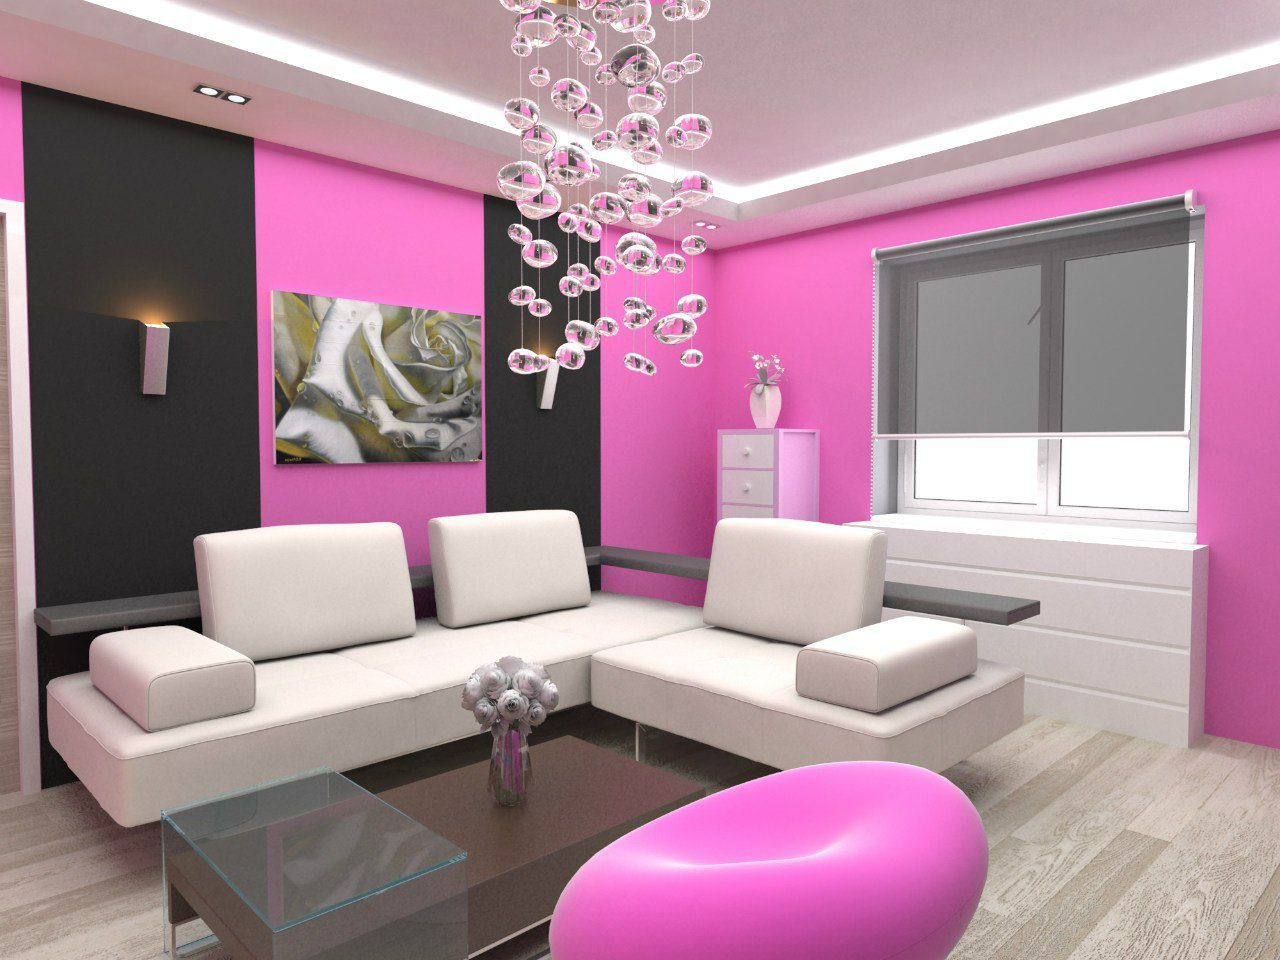 Black And White And Pink Living Room pretty living room paint idea with pink and black painted wall and